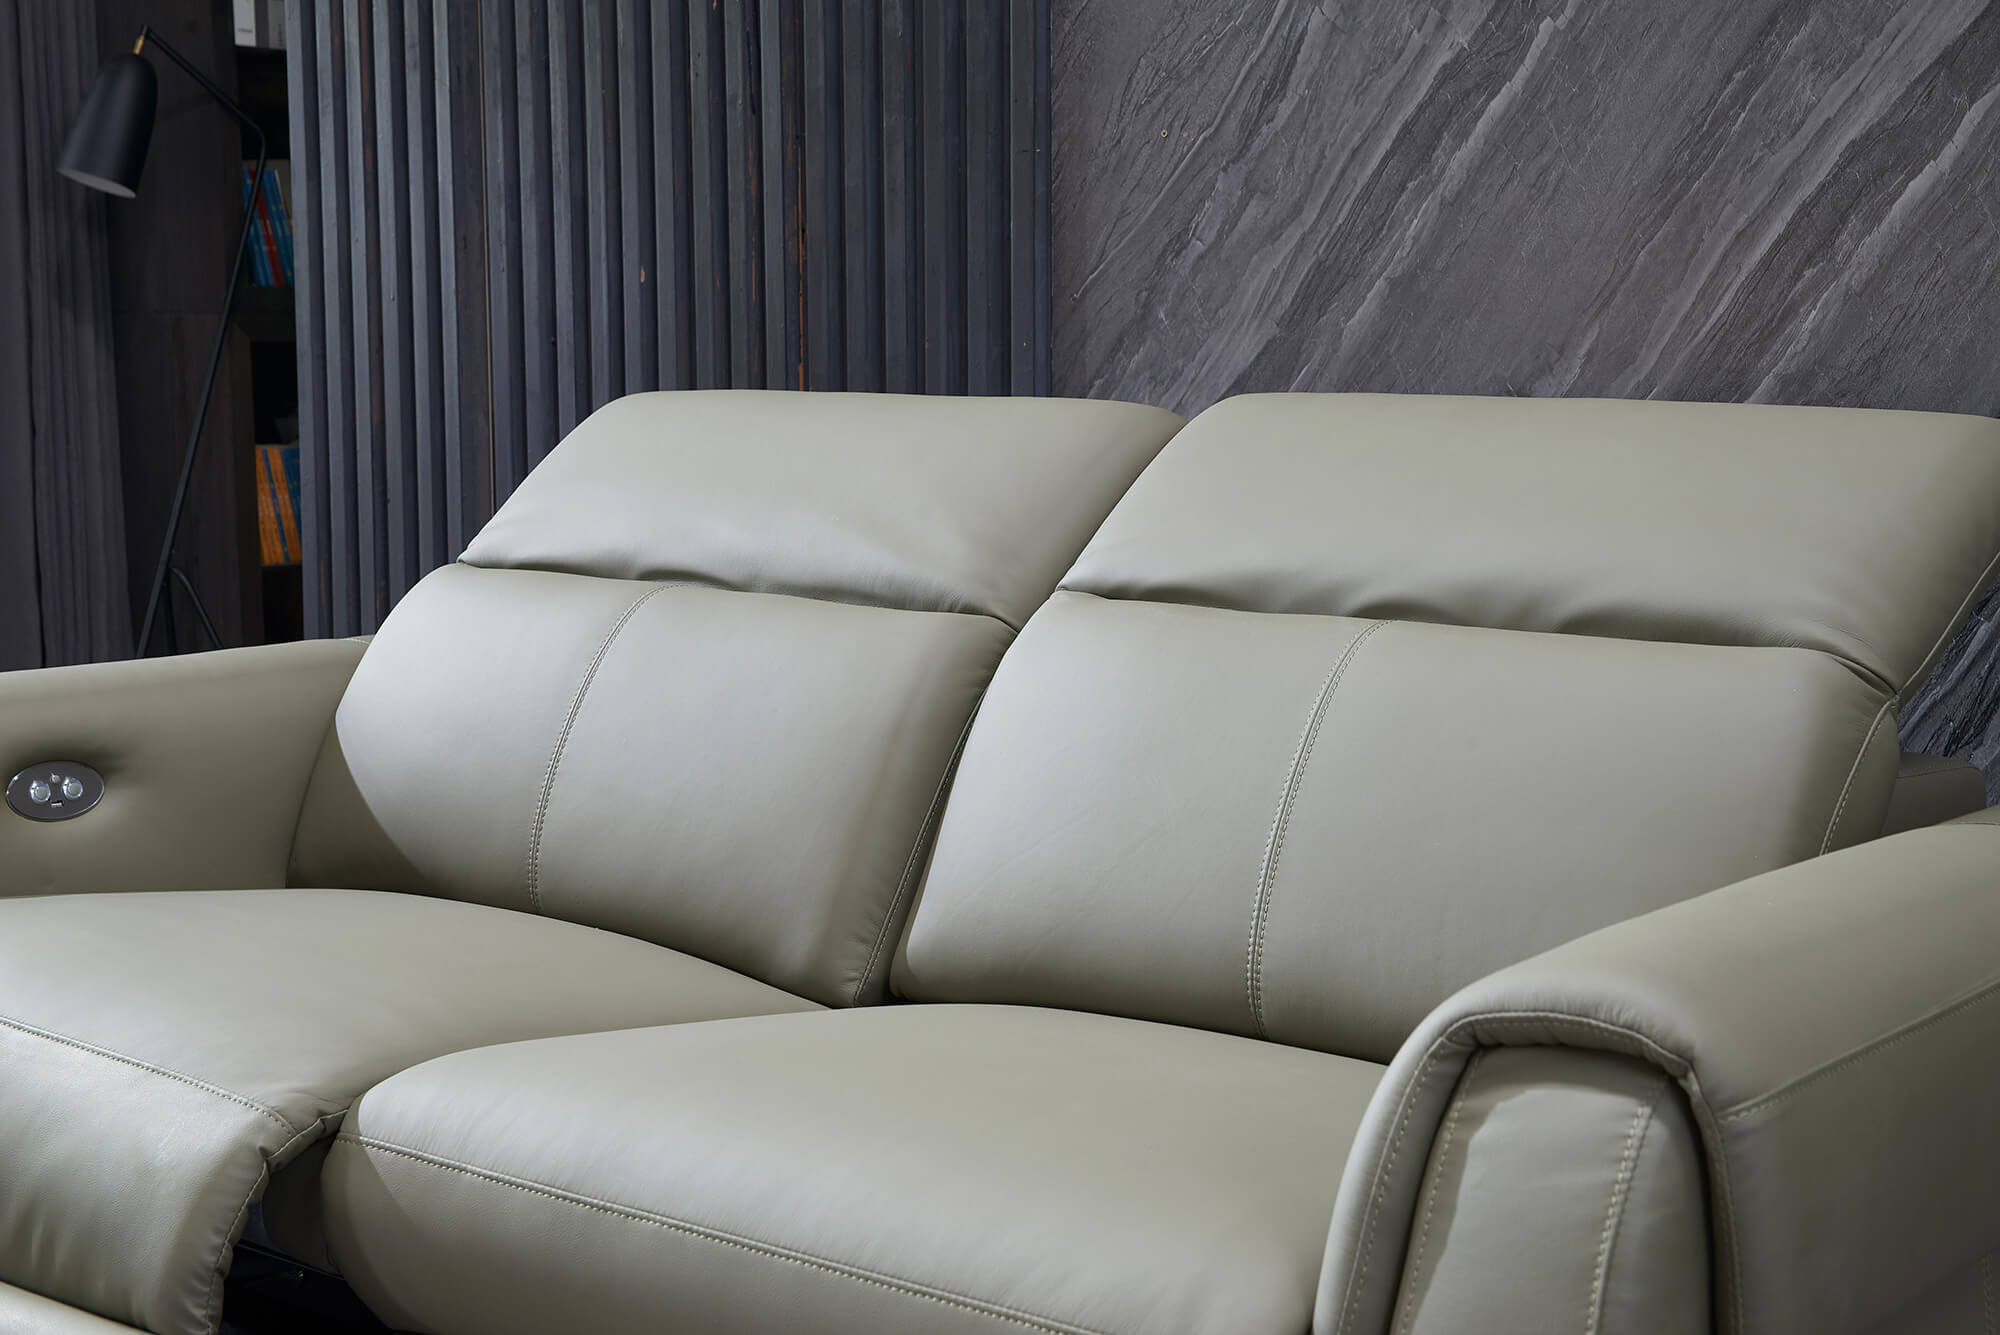 olive leather electric recliner sofa 2 seater reclined legrest